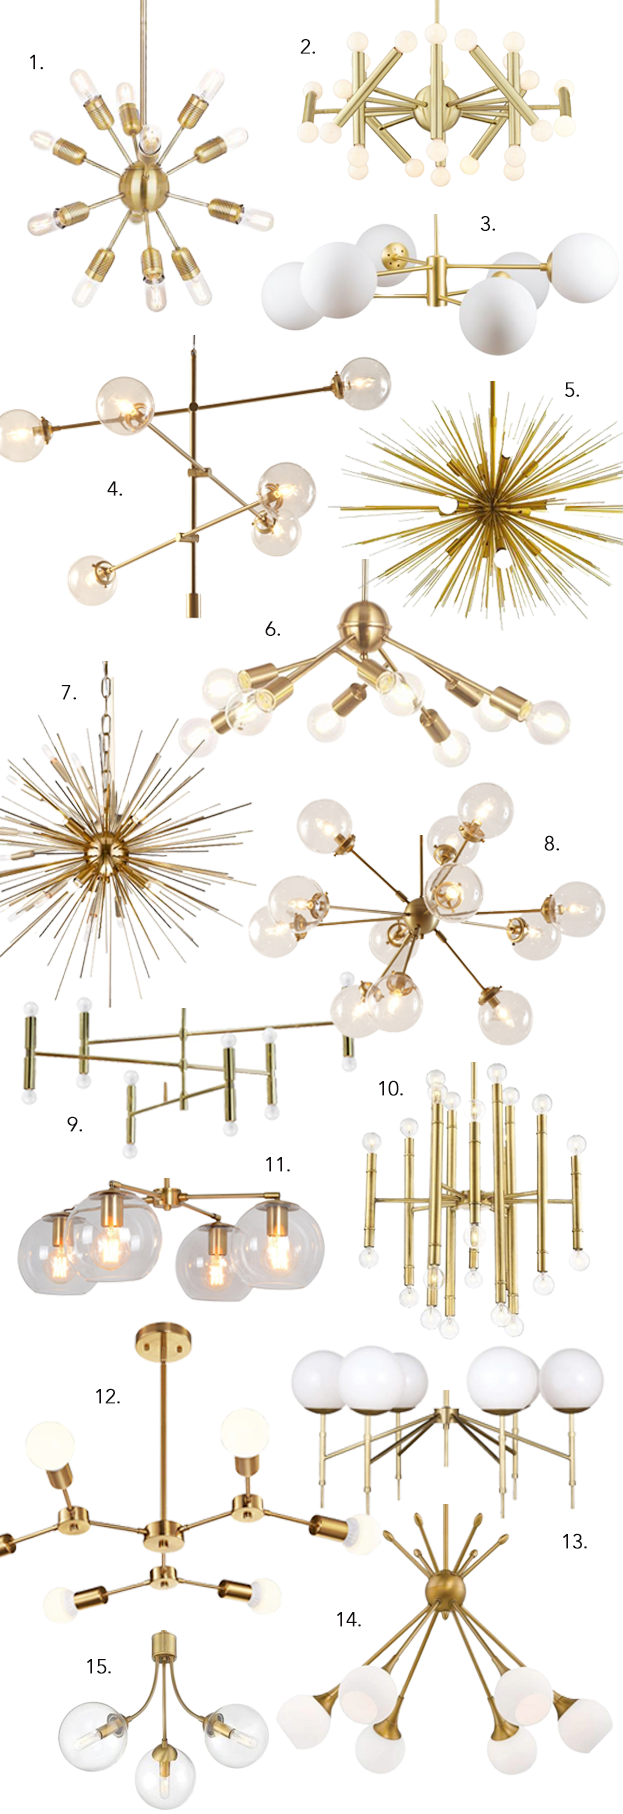 ROUND-UP: GOLD/BRASS MID-CENTURY MODERN CHANDELIER LIGHTING - heydjangles.com - 14 gorgeous options, from Sputnik chandeliers, bubble lights, branch lighting and more. Who doesn't love a good Mid-century modern statement chandelier?! So much drama! #midcenturymodern #statementlighting #drama